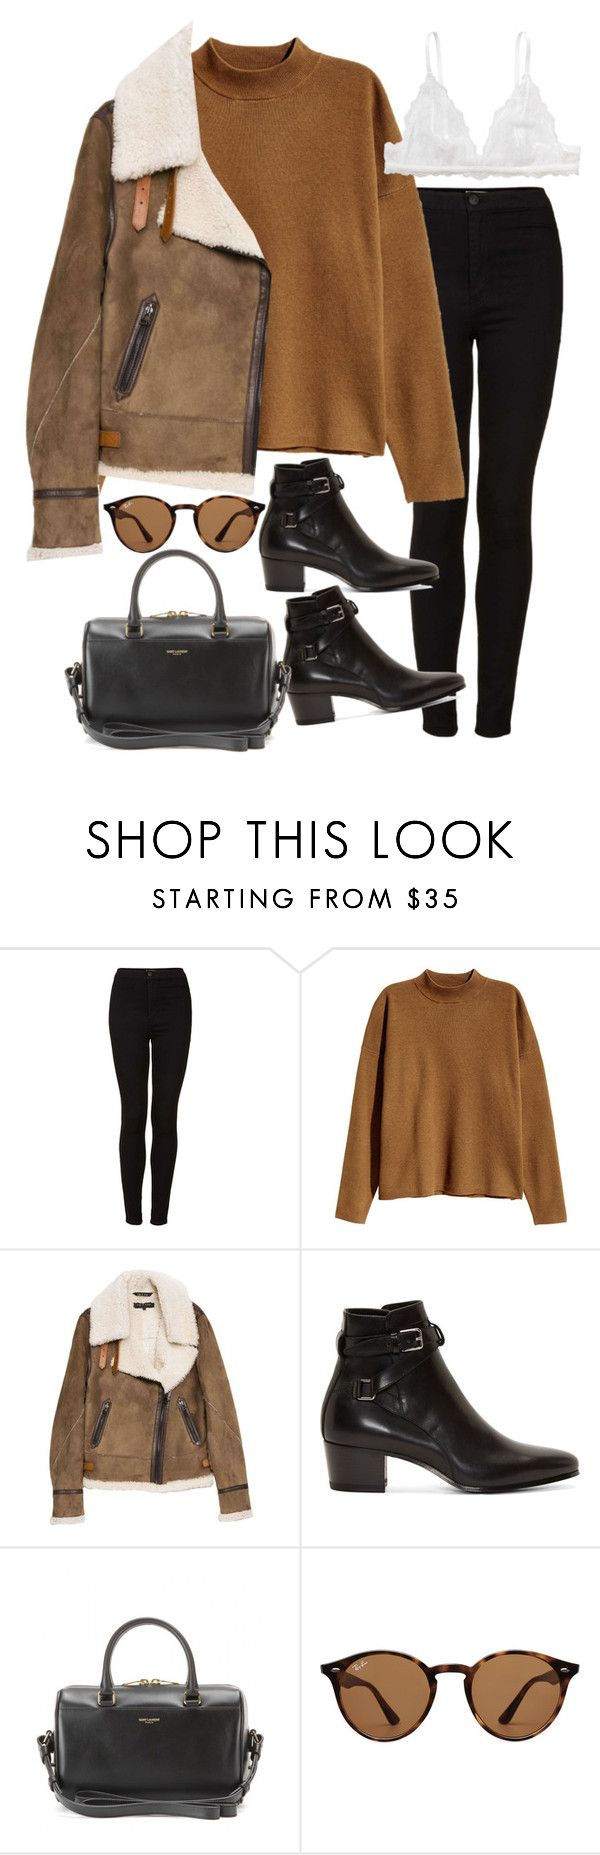 """""""Sin título #2121"""" by alx97 ❤ liked on Polyvore featuring Topshop, H&M, rag & bone, Yves Saint Laurent, Ray-Ban and Monki"""